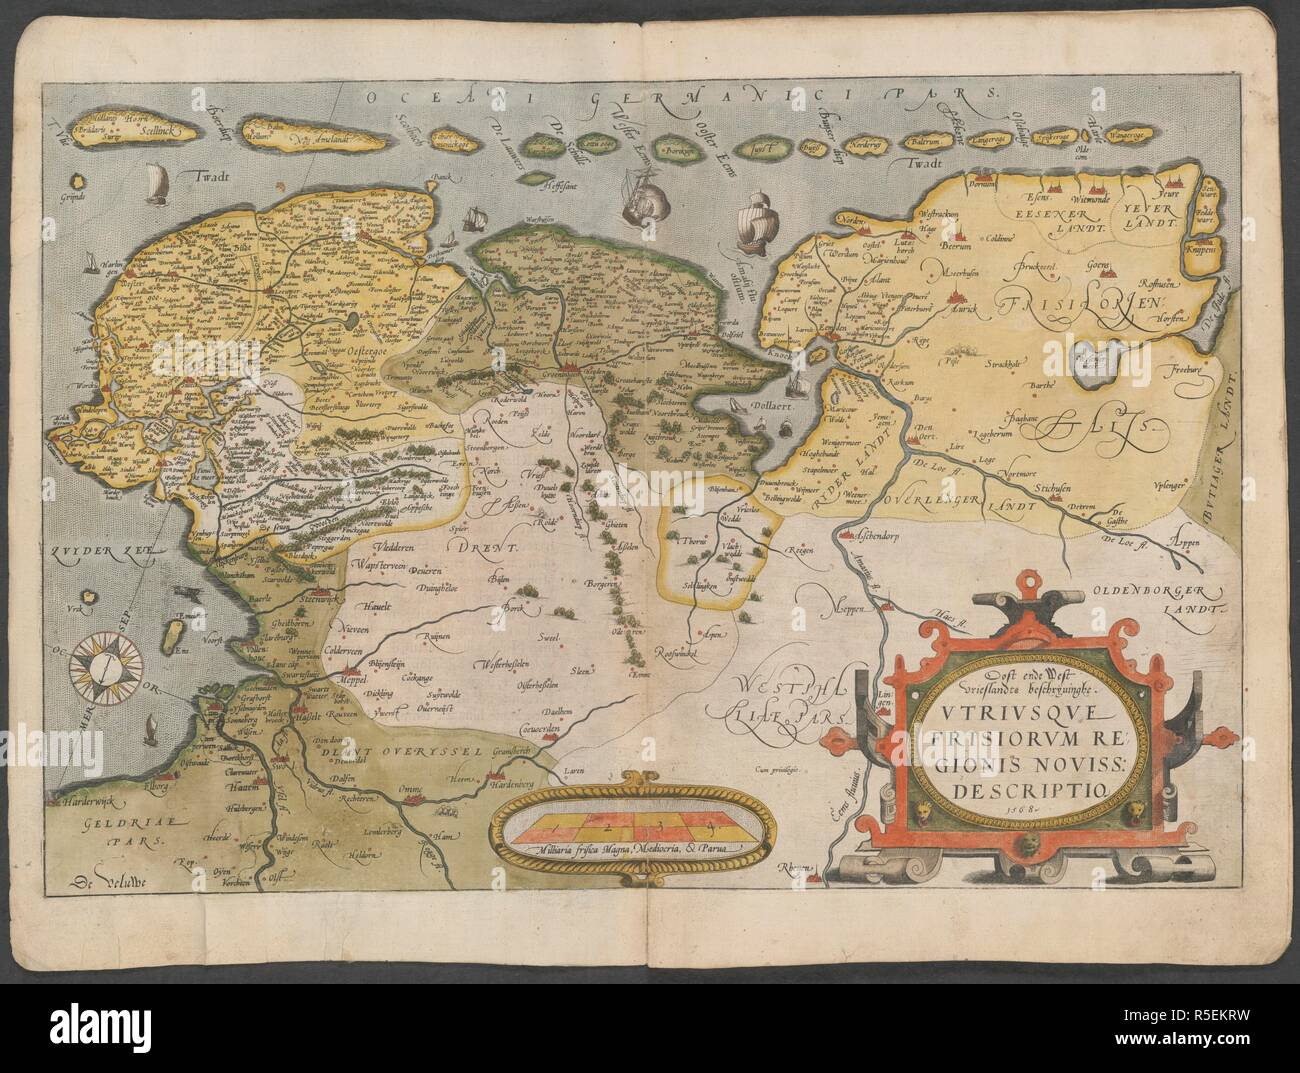 Picture of: Holland Netherlands The Mercator Atlas Of Europe 1570 1572 Map Of Holland Netherlands Image Taken From The Mercator Atlas Of Europe Originally Published Produced In 1570 1572 Source Maps C 29 C 13 18 Stock Photo Alamy